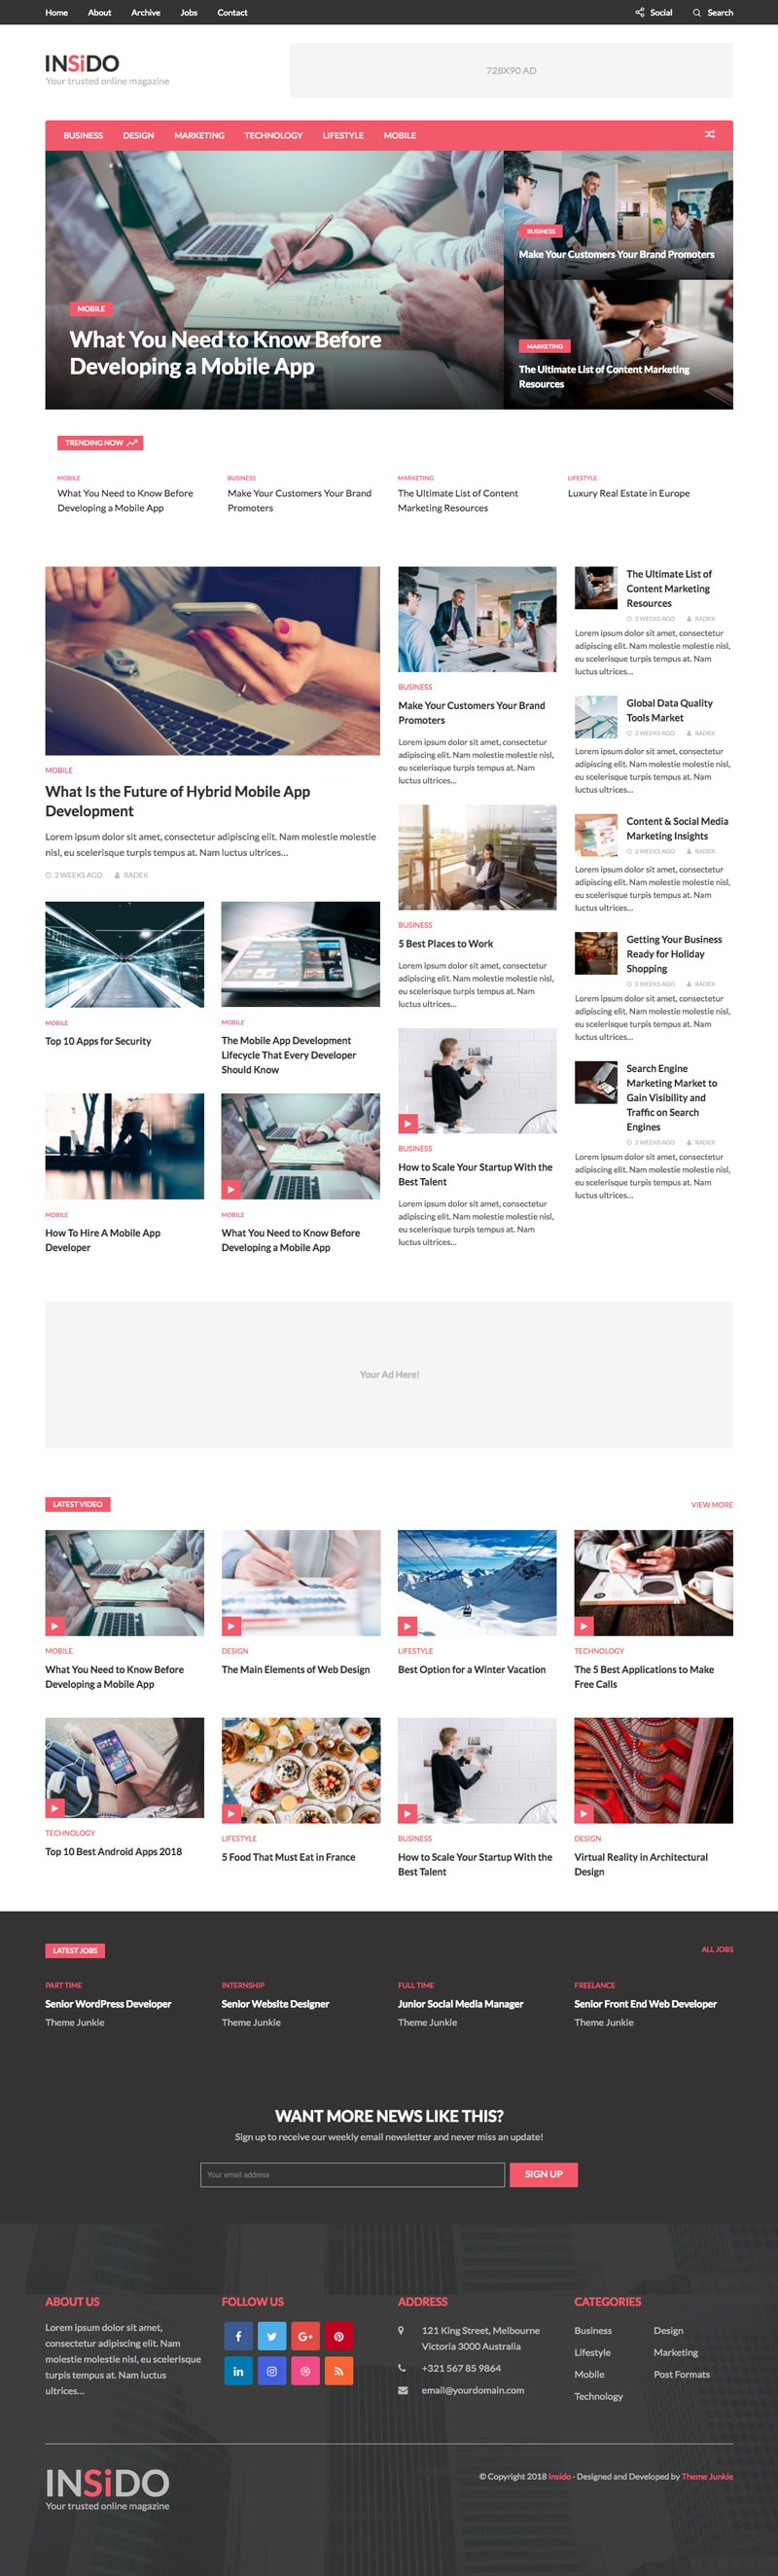 Insido-WordPress-Magazine-Theme